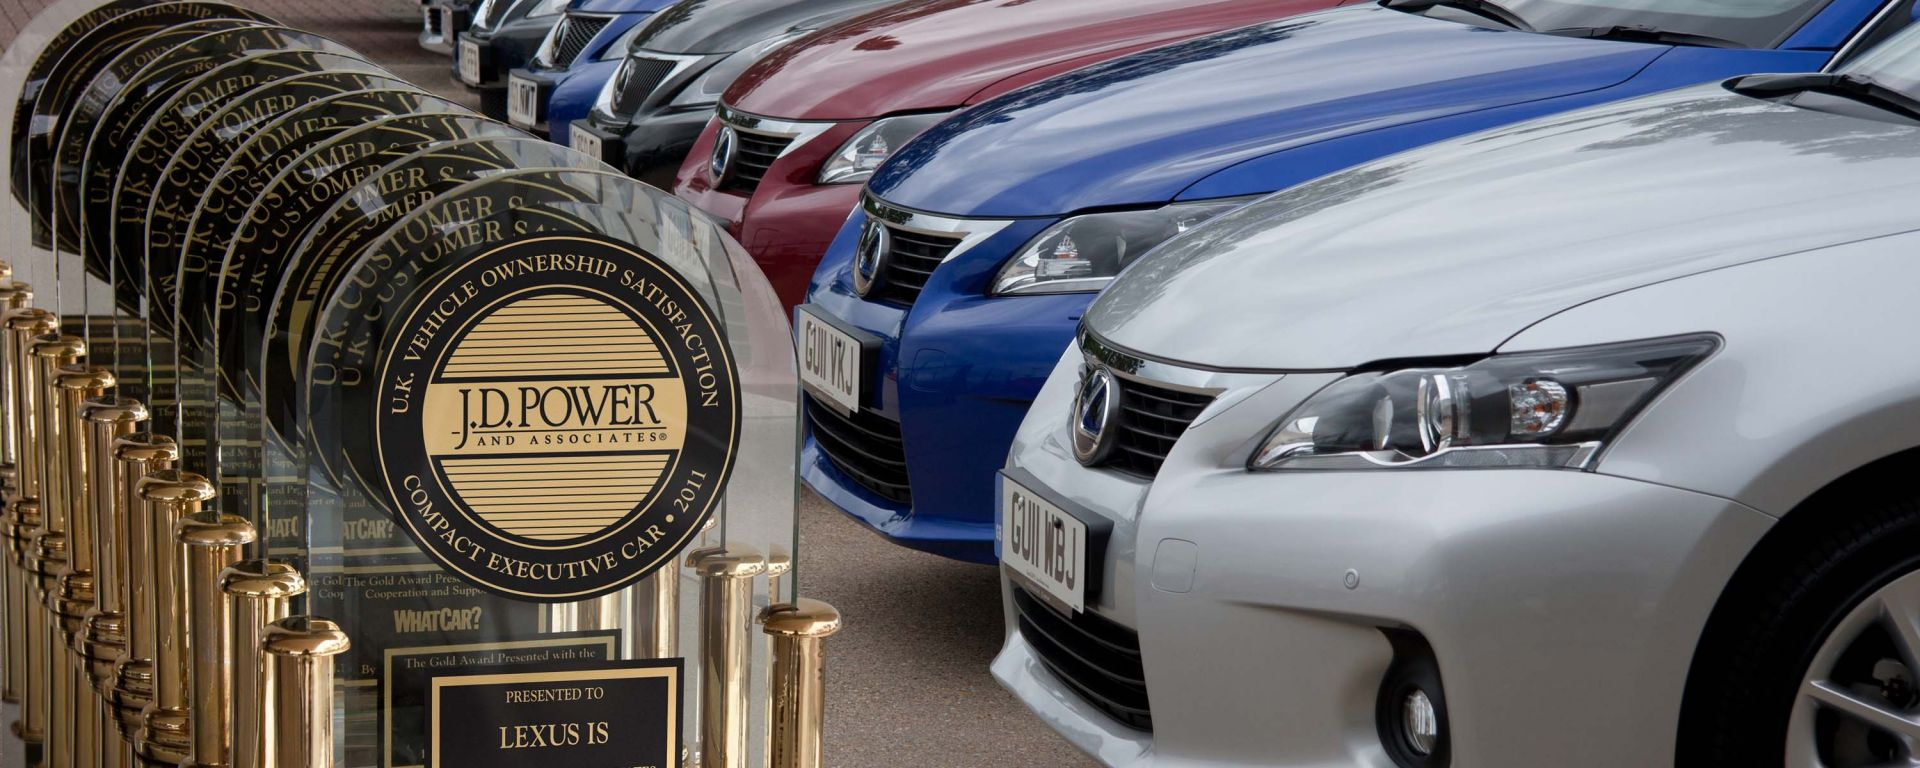 JD Power 2011: piace il made in Japan